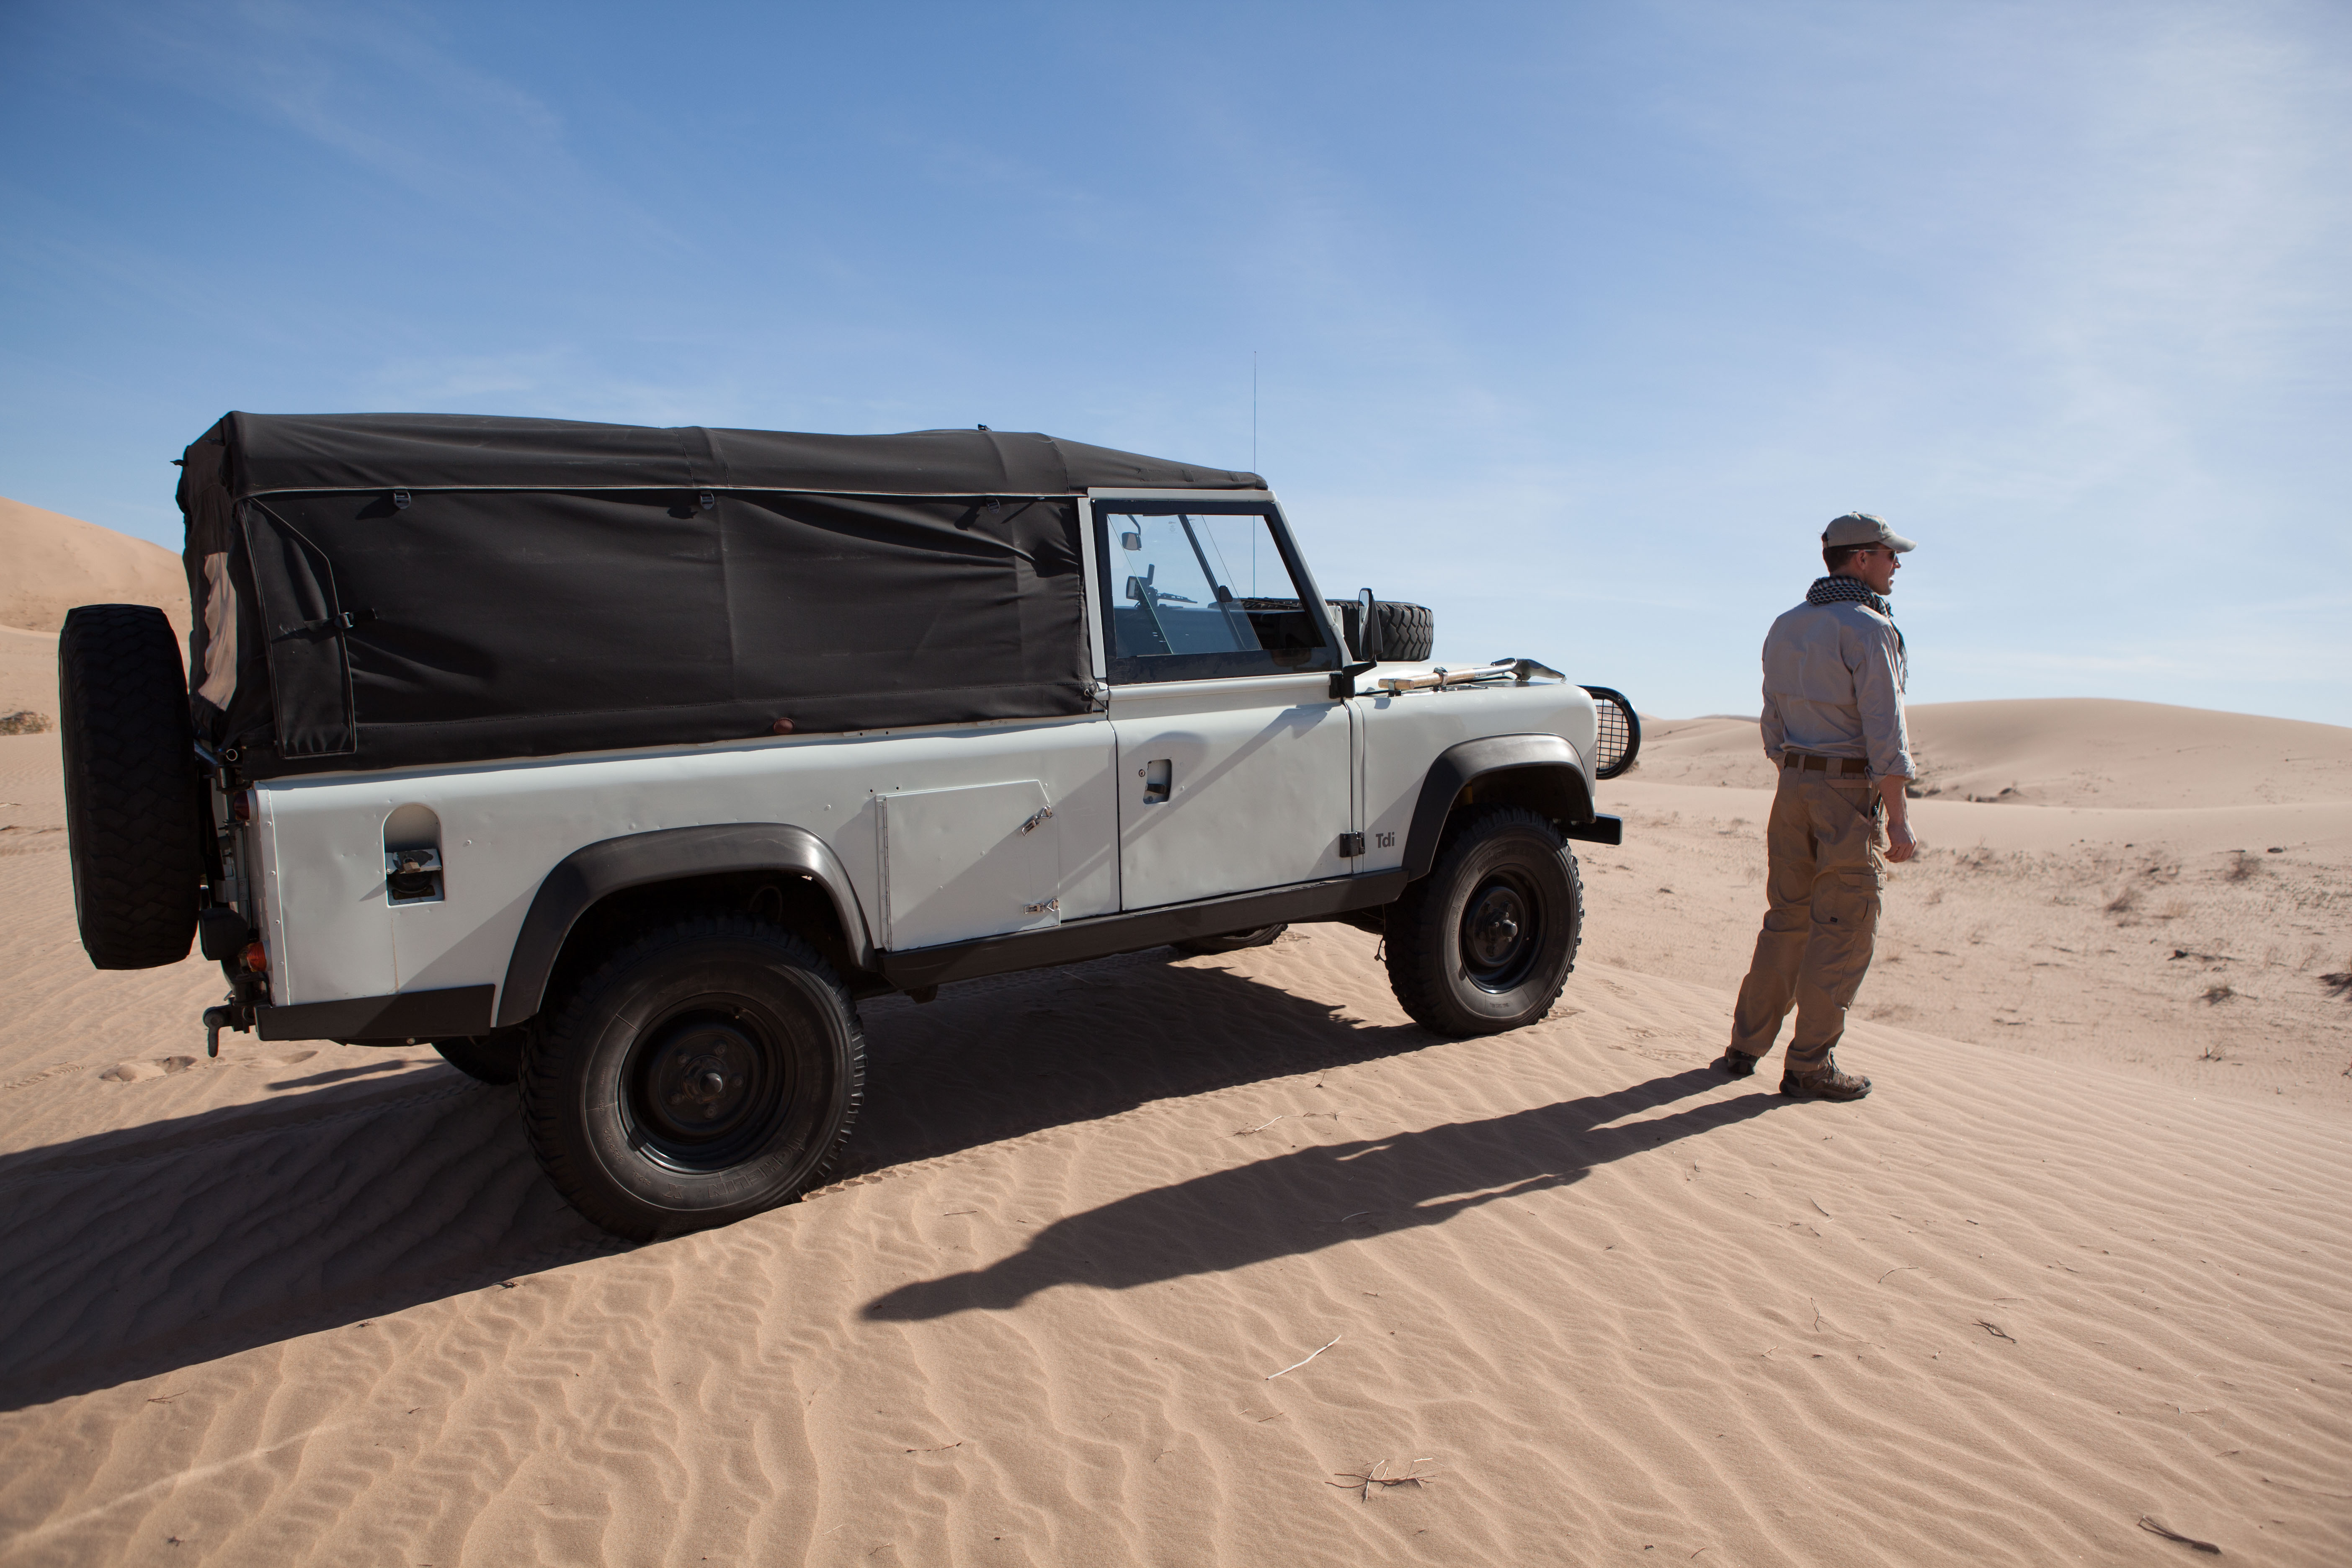 The 10 Commandments of Modifying an Overland Vehicle